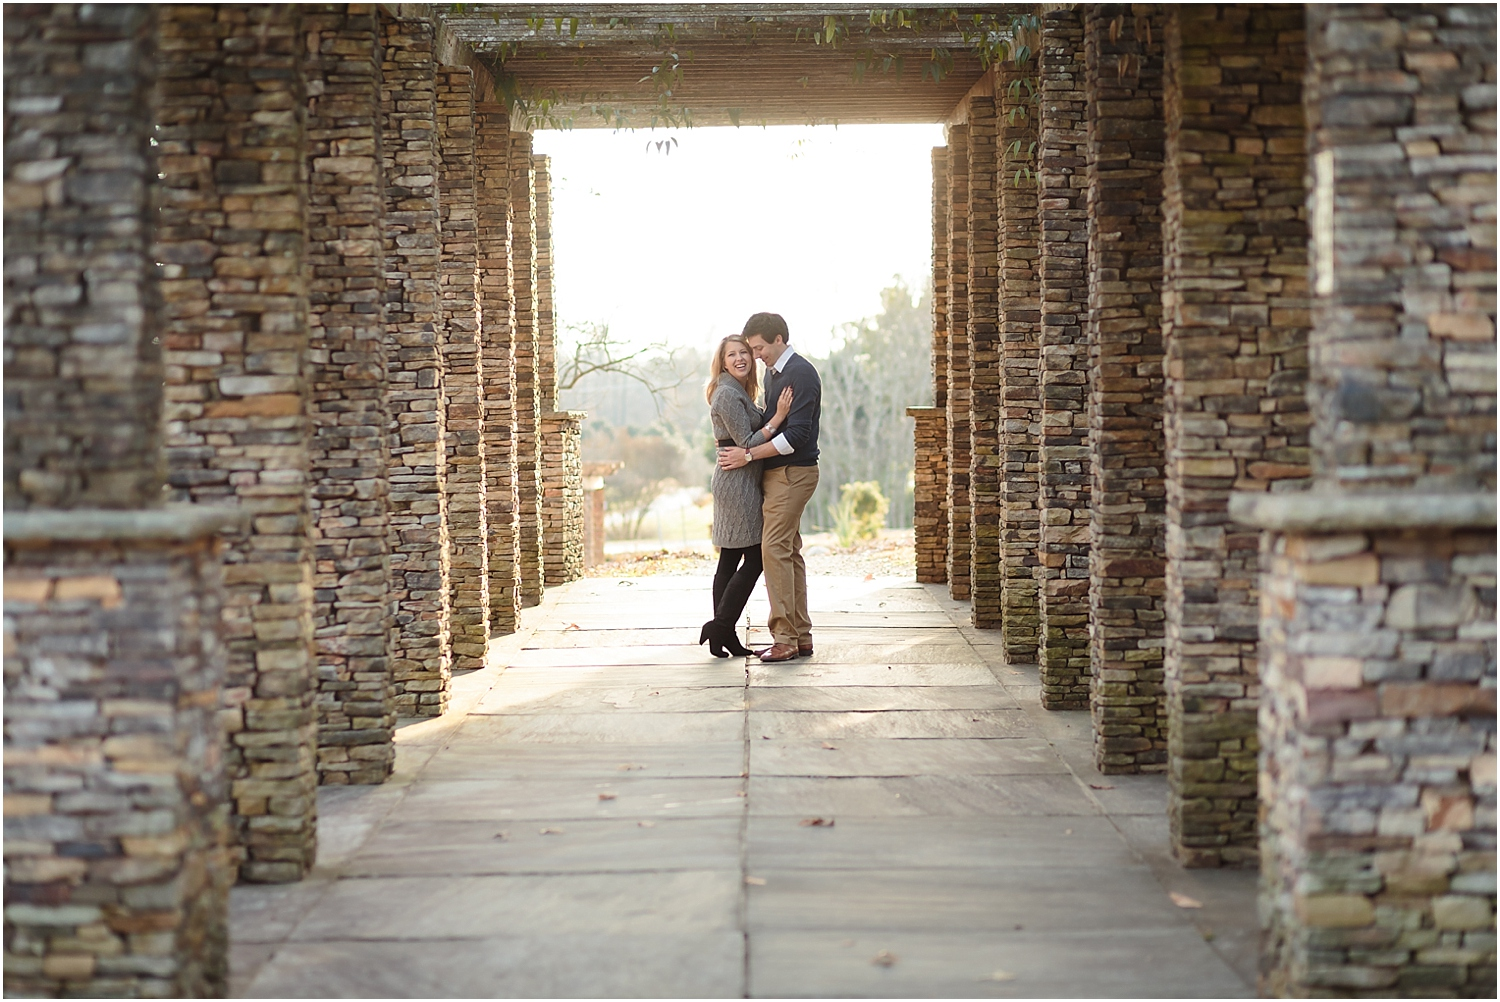 141207--0108clemson-engagement-shoot_blog.jpg